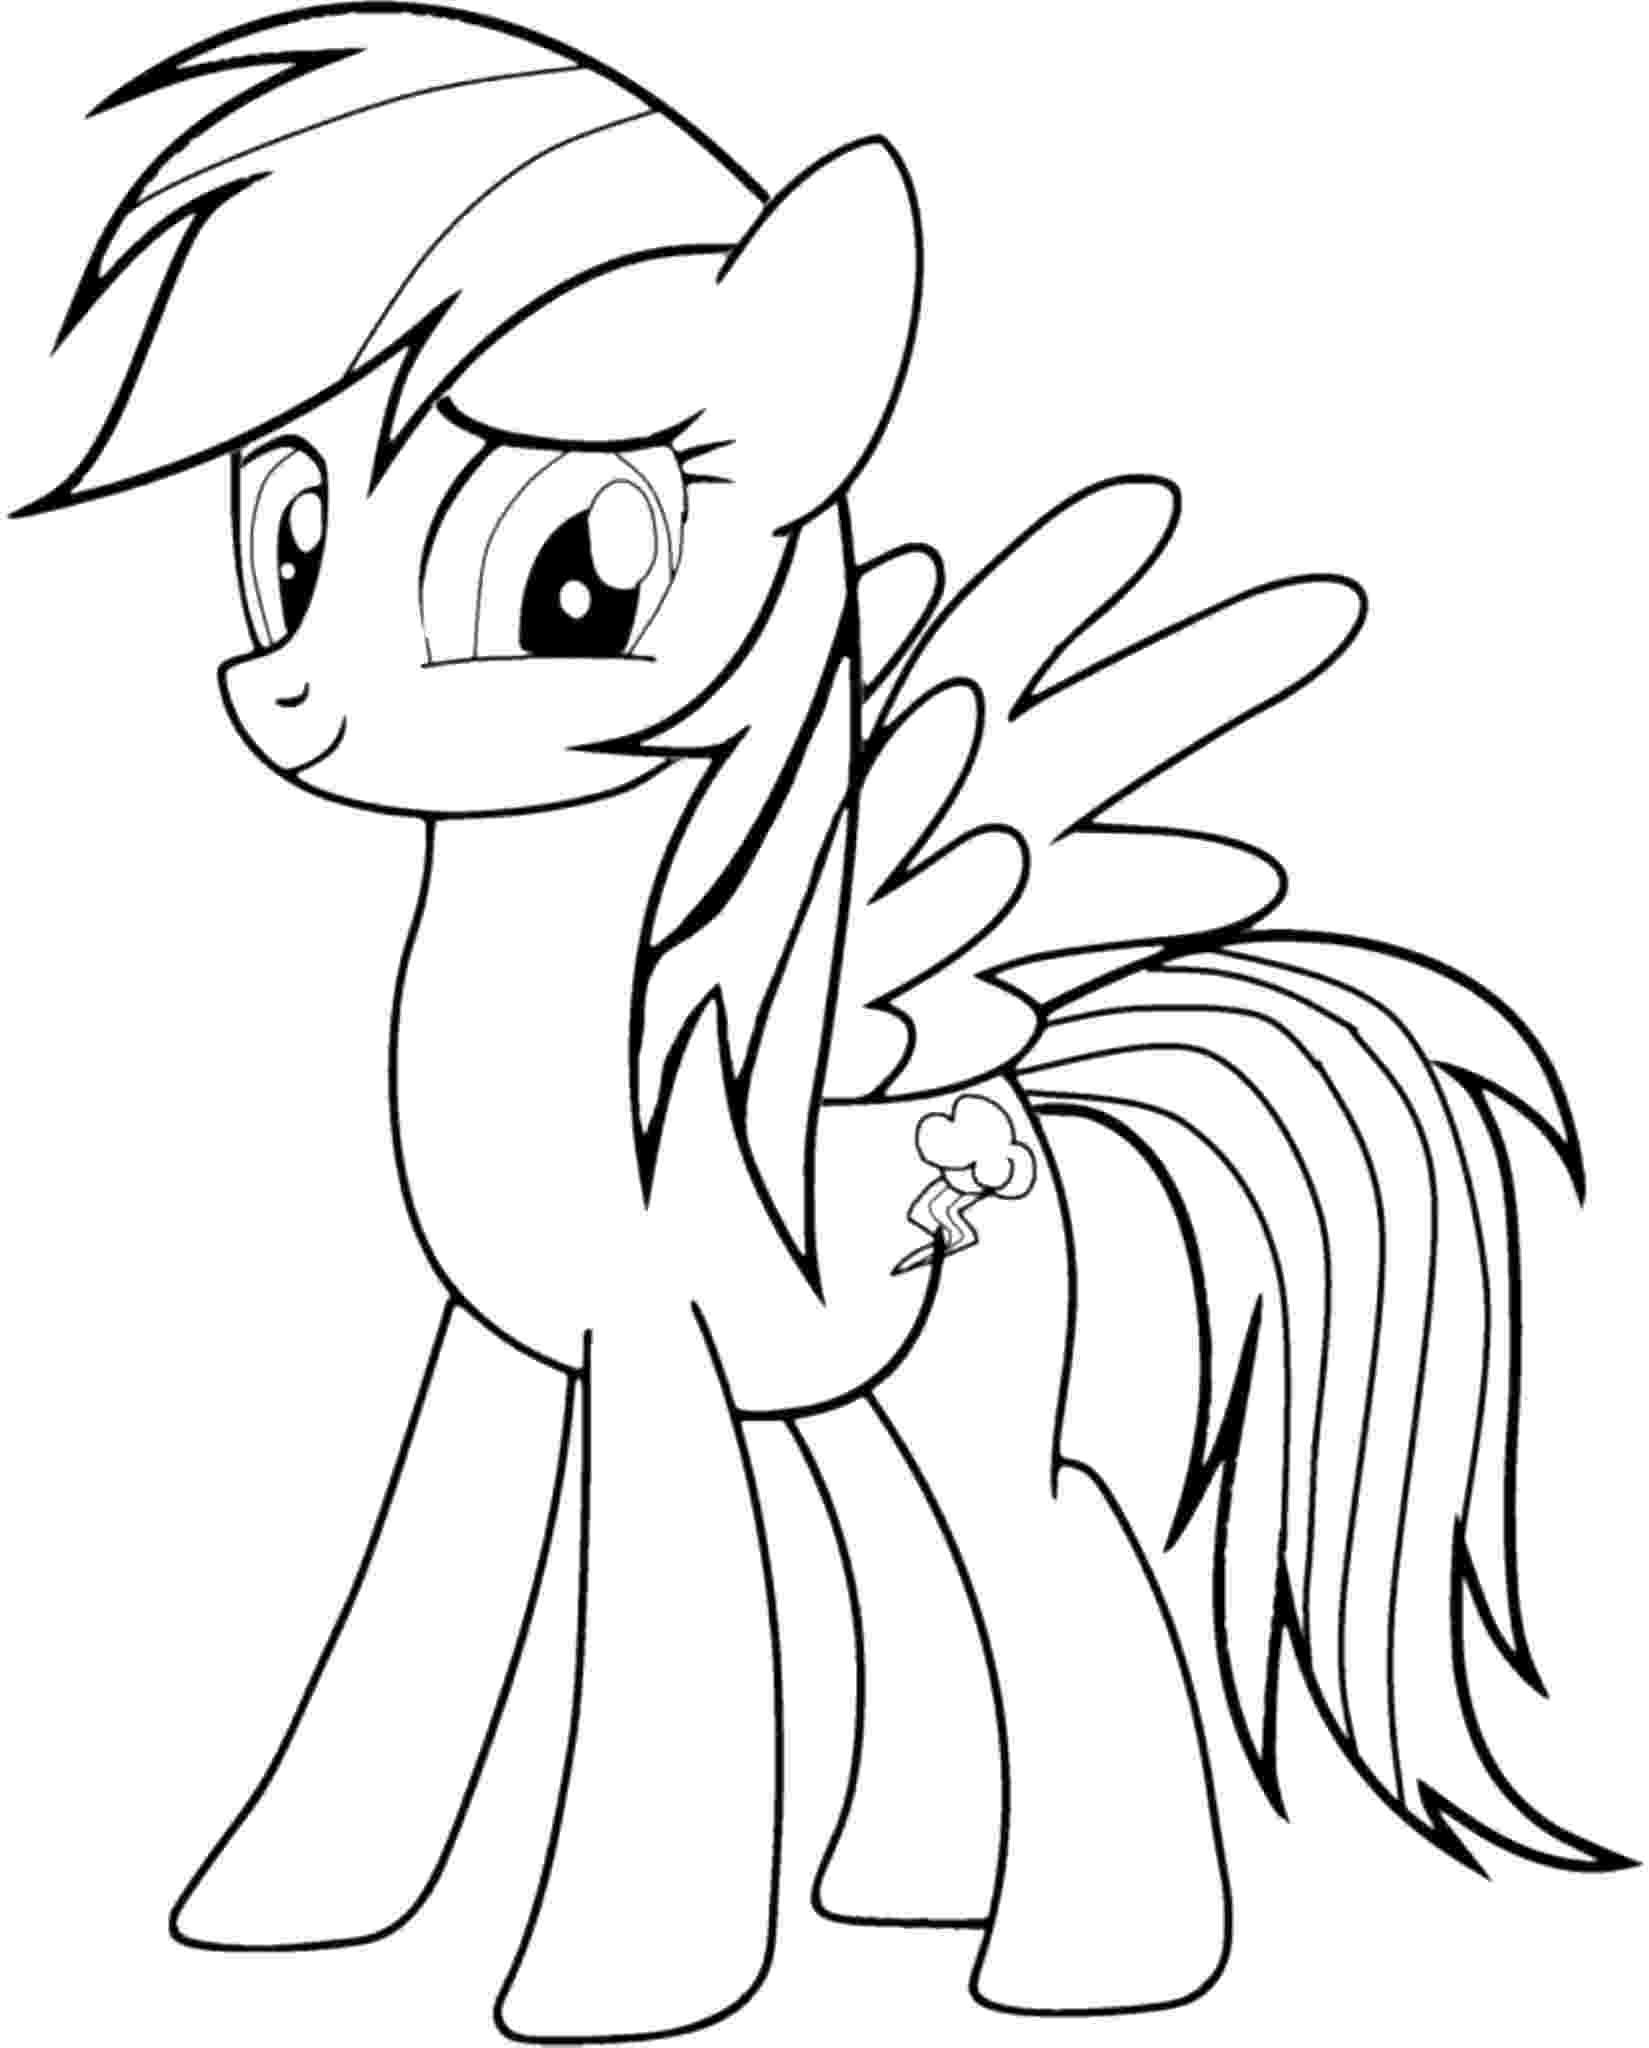 rainbow dash color page element of loyalty rainbow dash coloring pages coloring pages rainbow dash color page